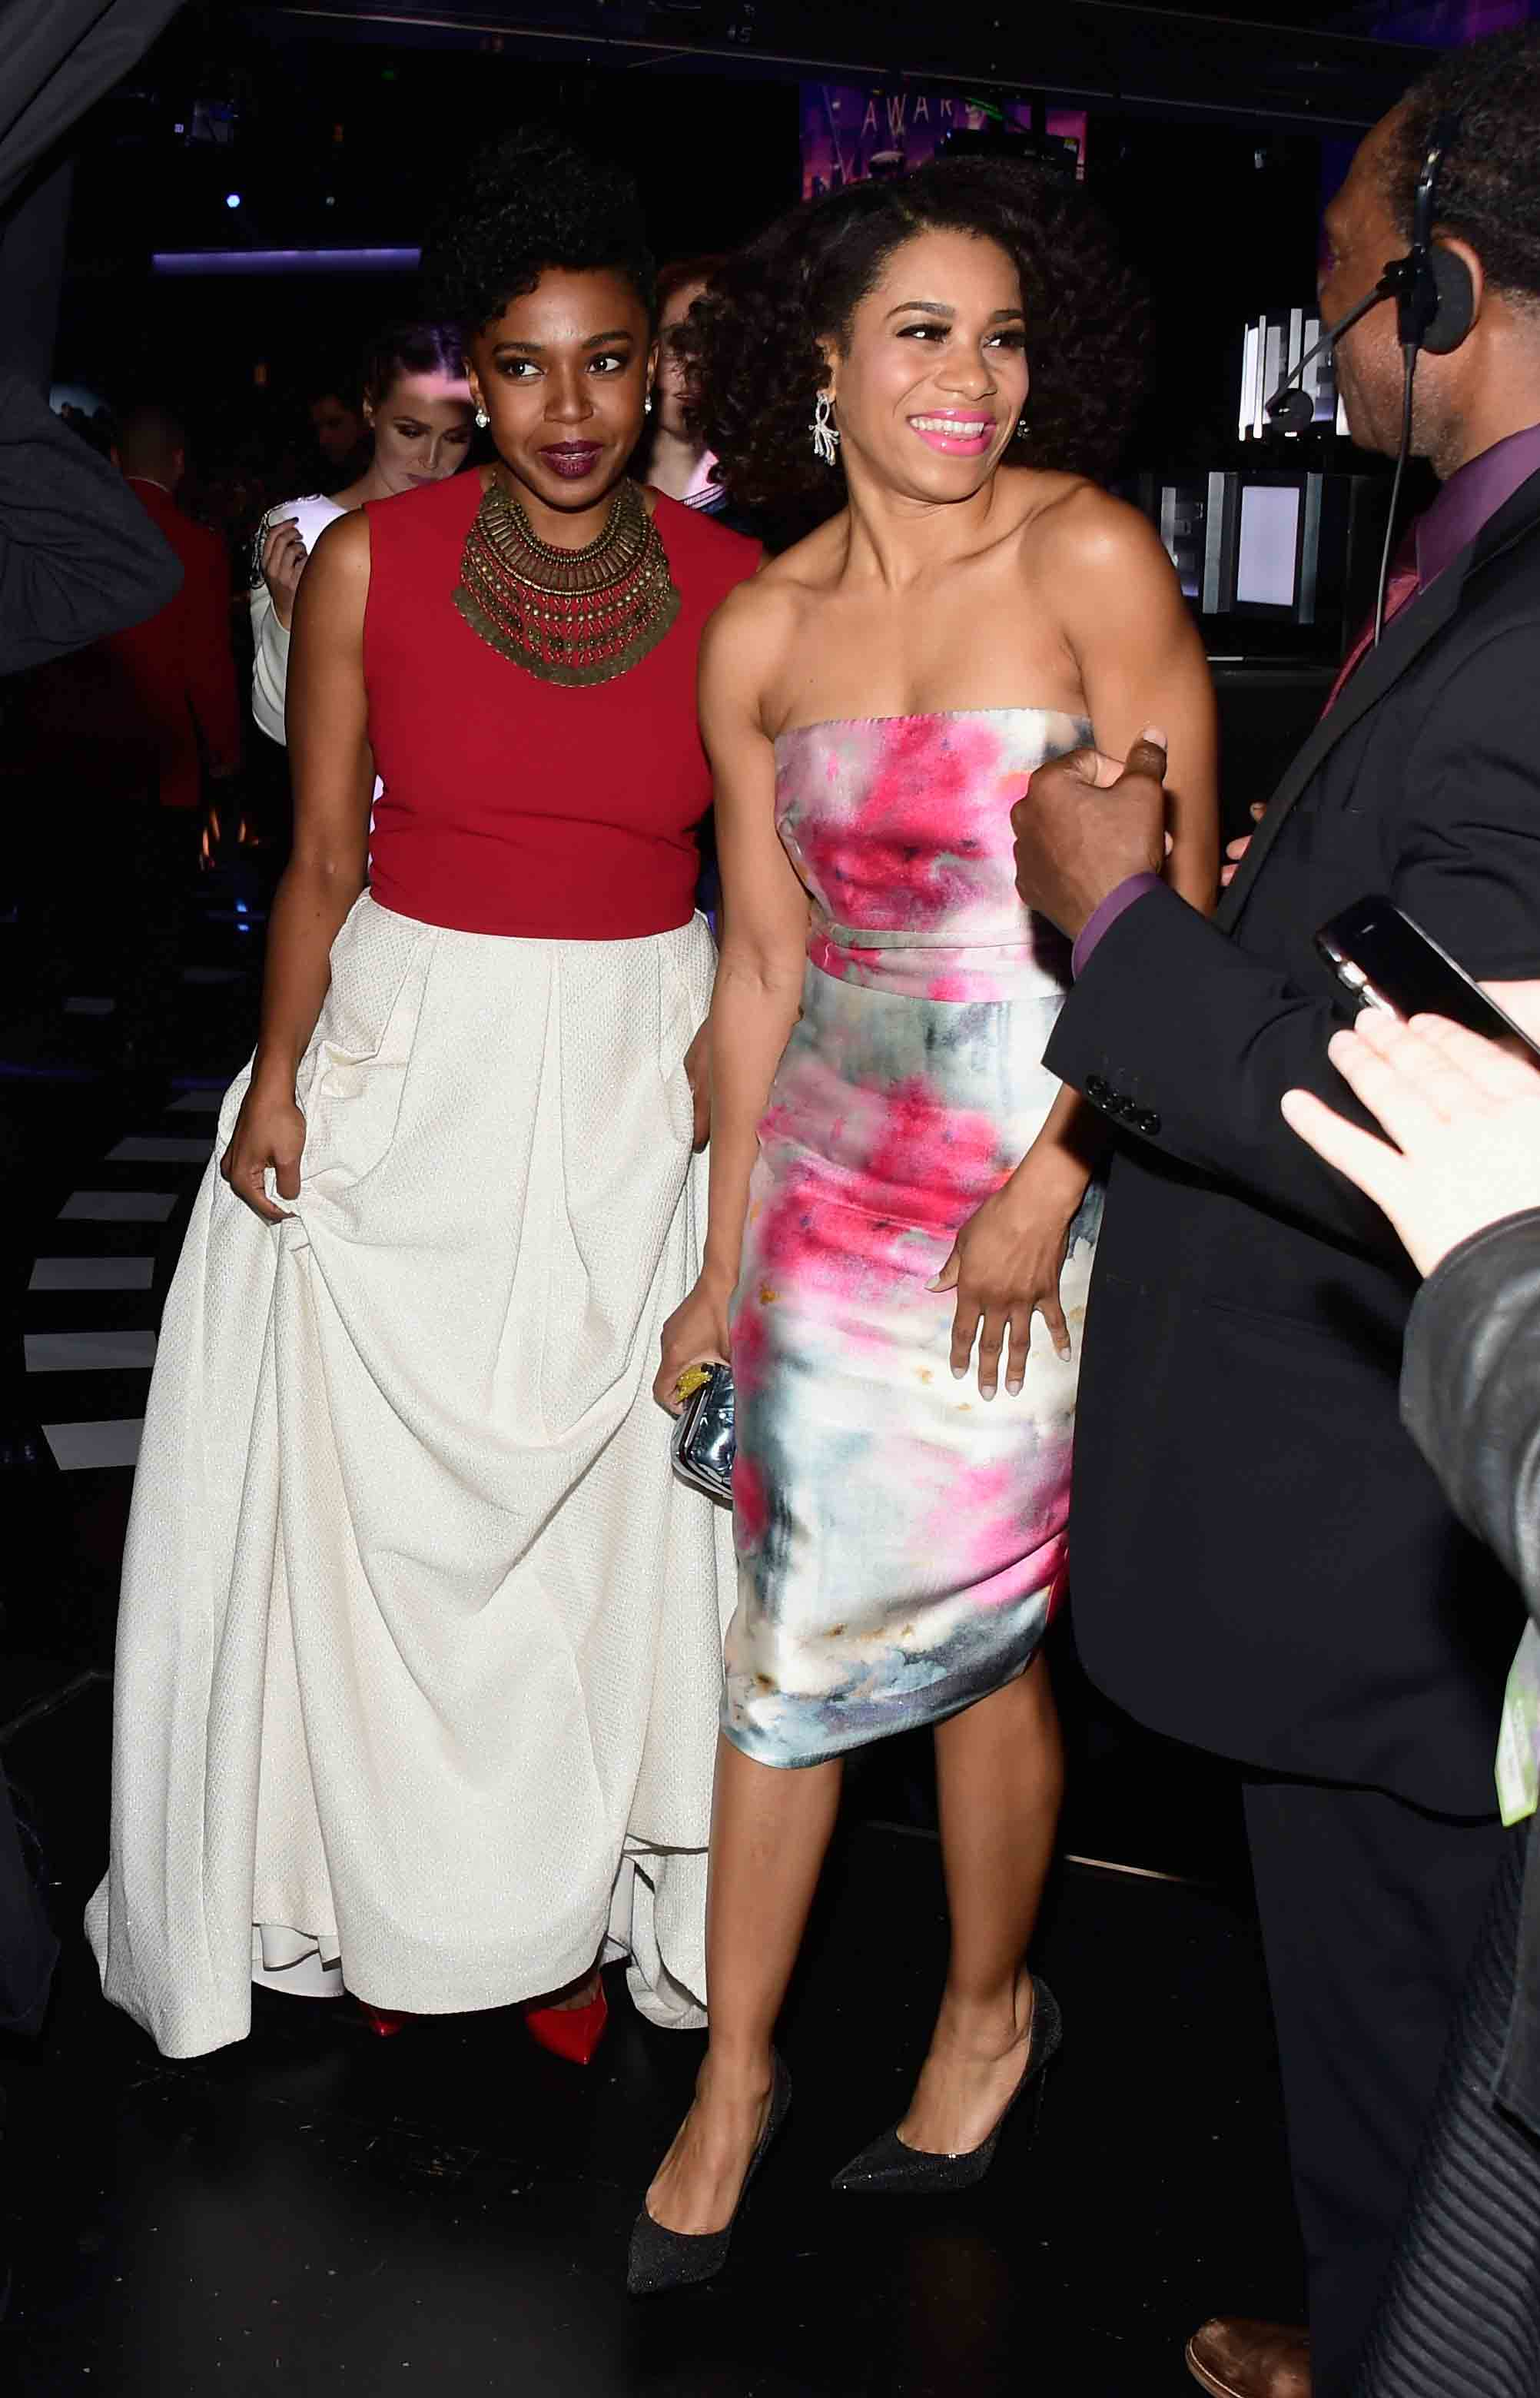 Kelly McCreary and her cast mate Jerrika Hinton together at the People's Choice Awards